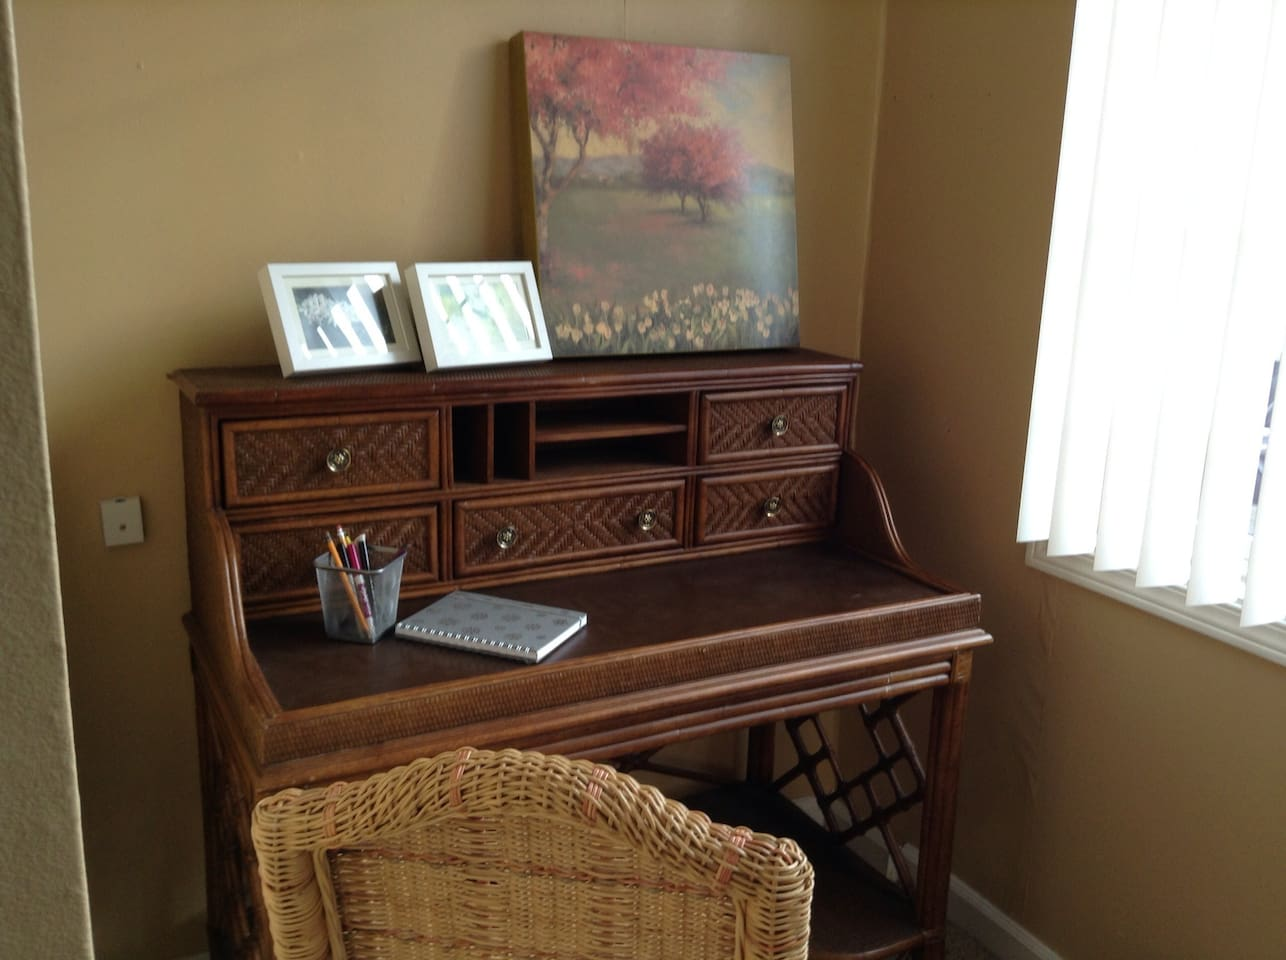 Study and work from the charming wicker desk in the office nook.